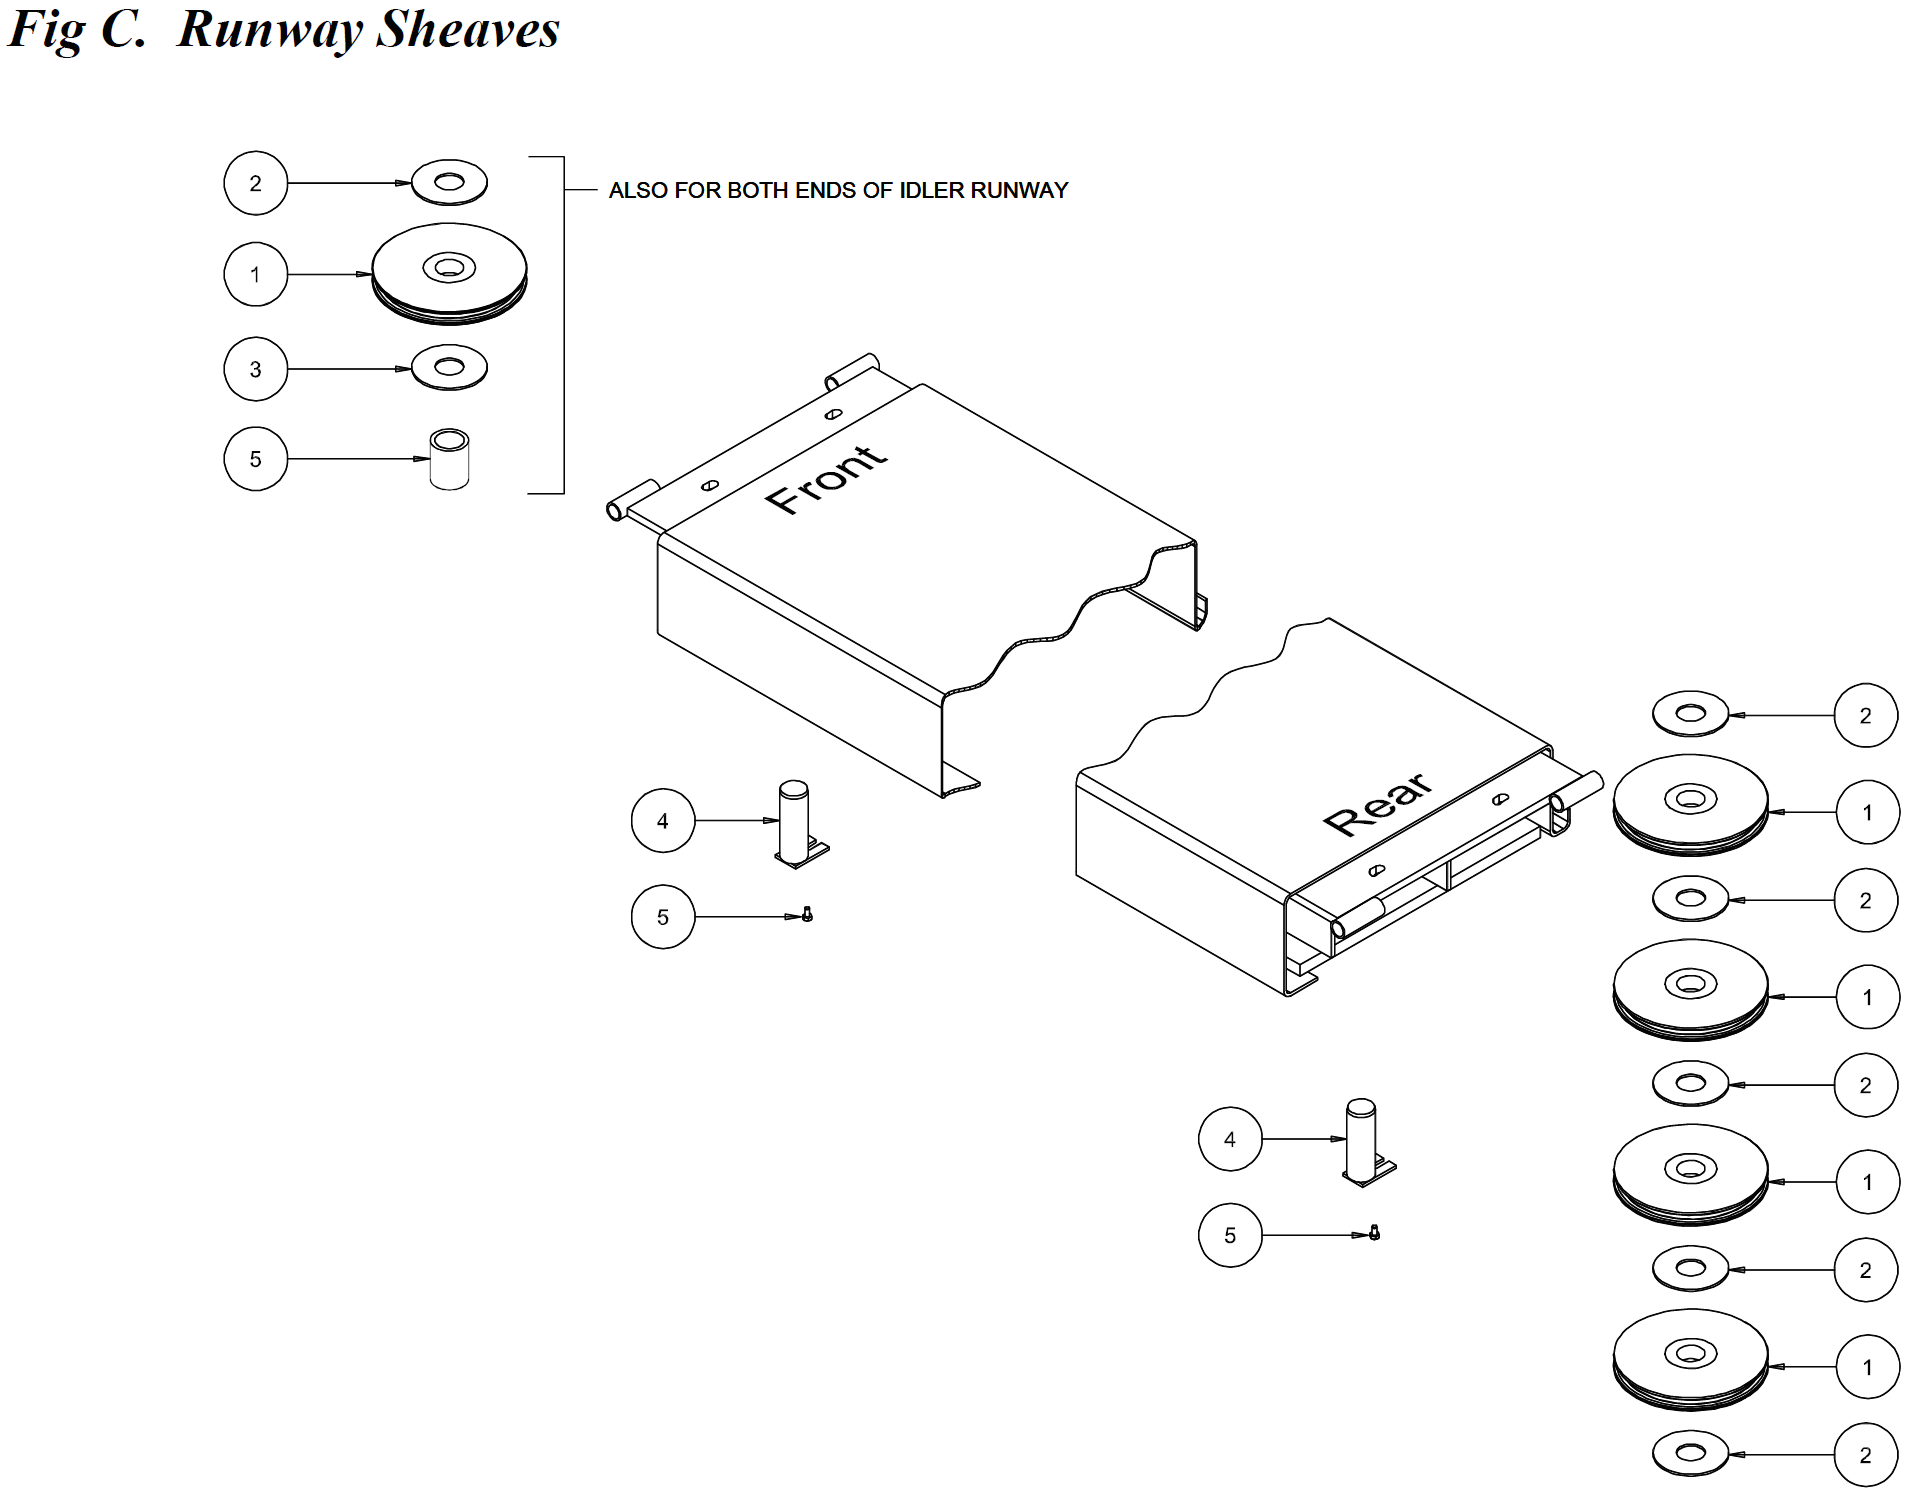 40000-open-front-runway-sheaves-diagram.png